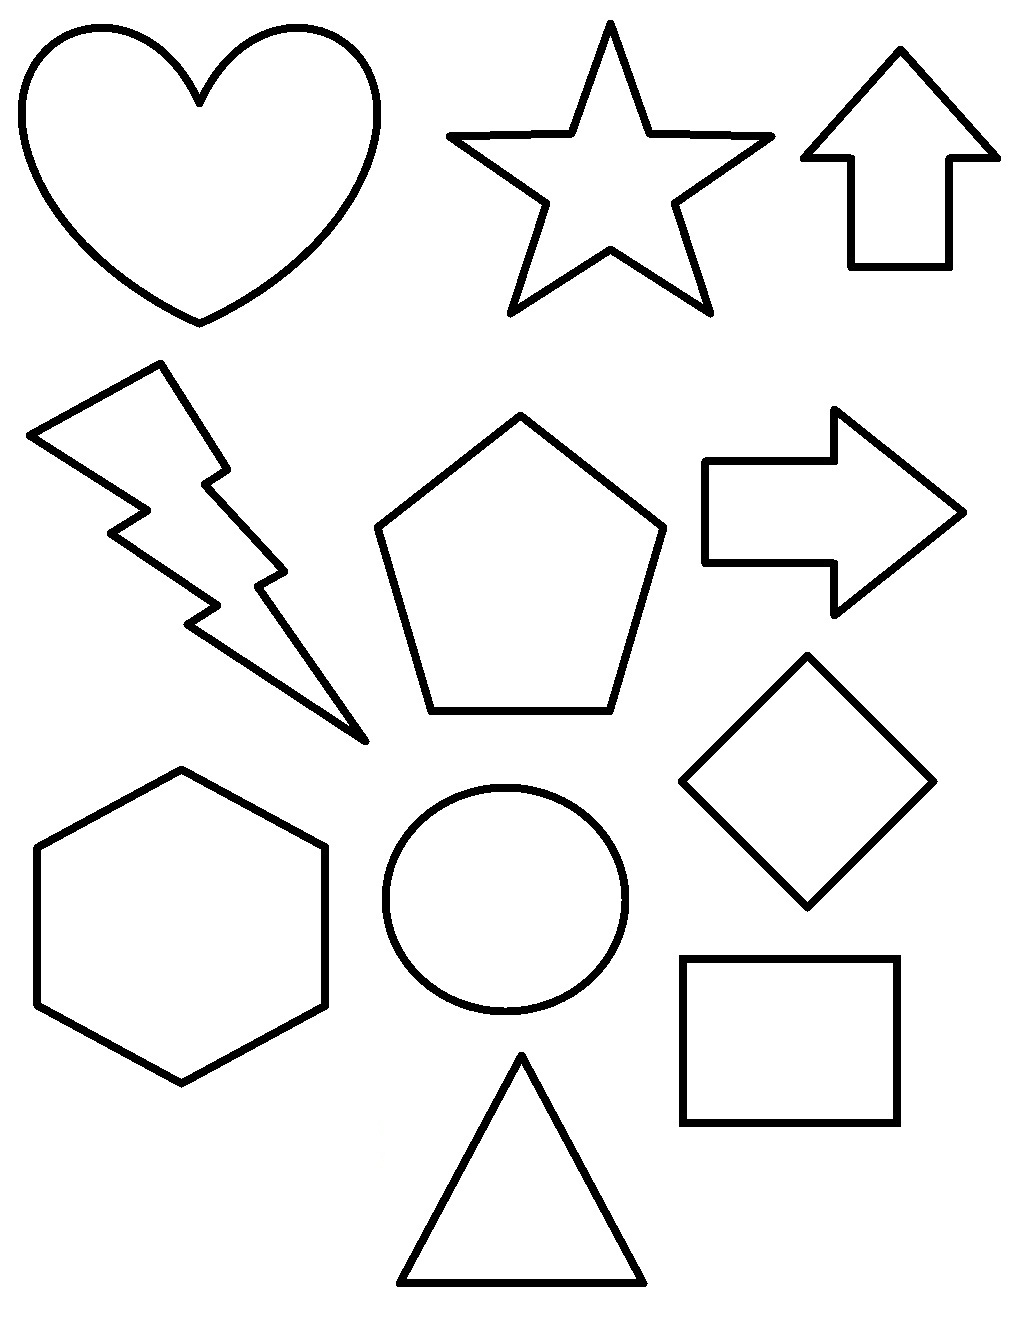 coloring shapes and make pictures of shapes printable shapes coloring pages for kids cool2bkids pictures and make shapes of shapes coloring